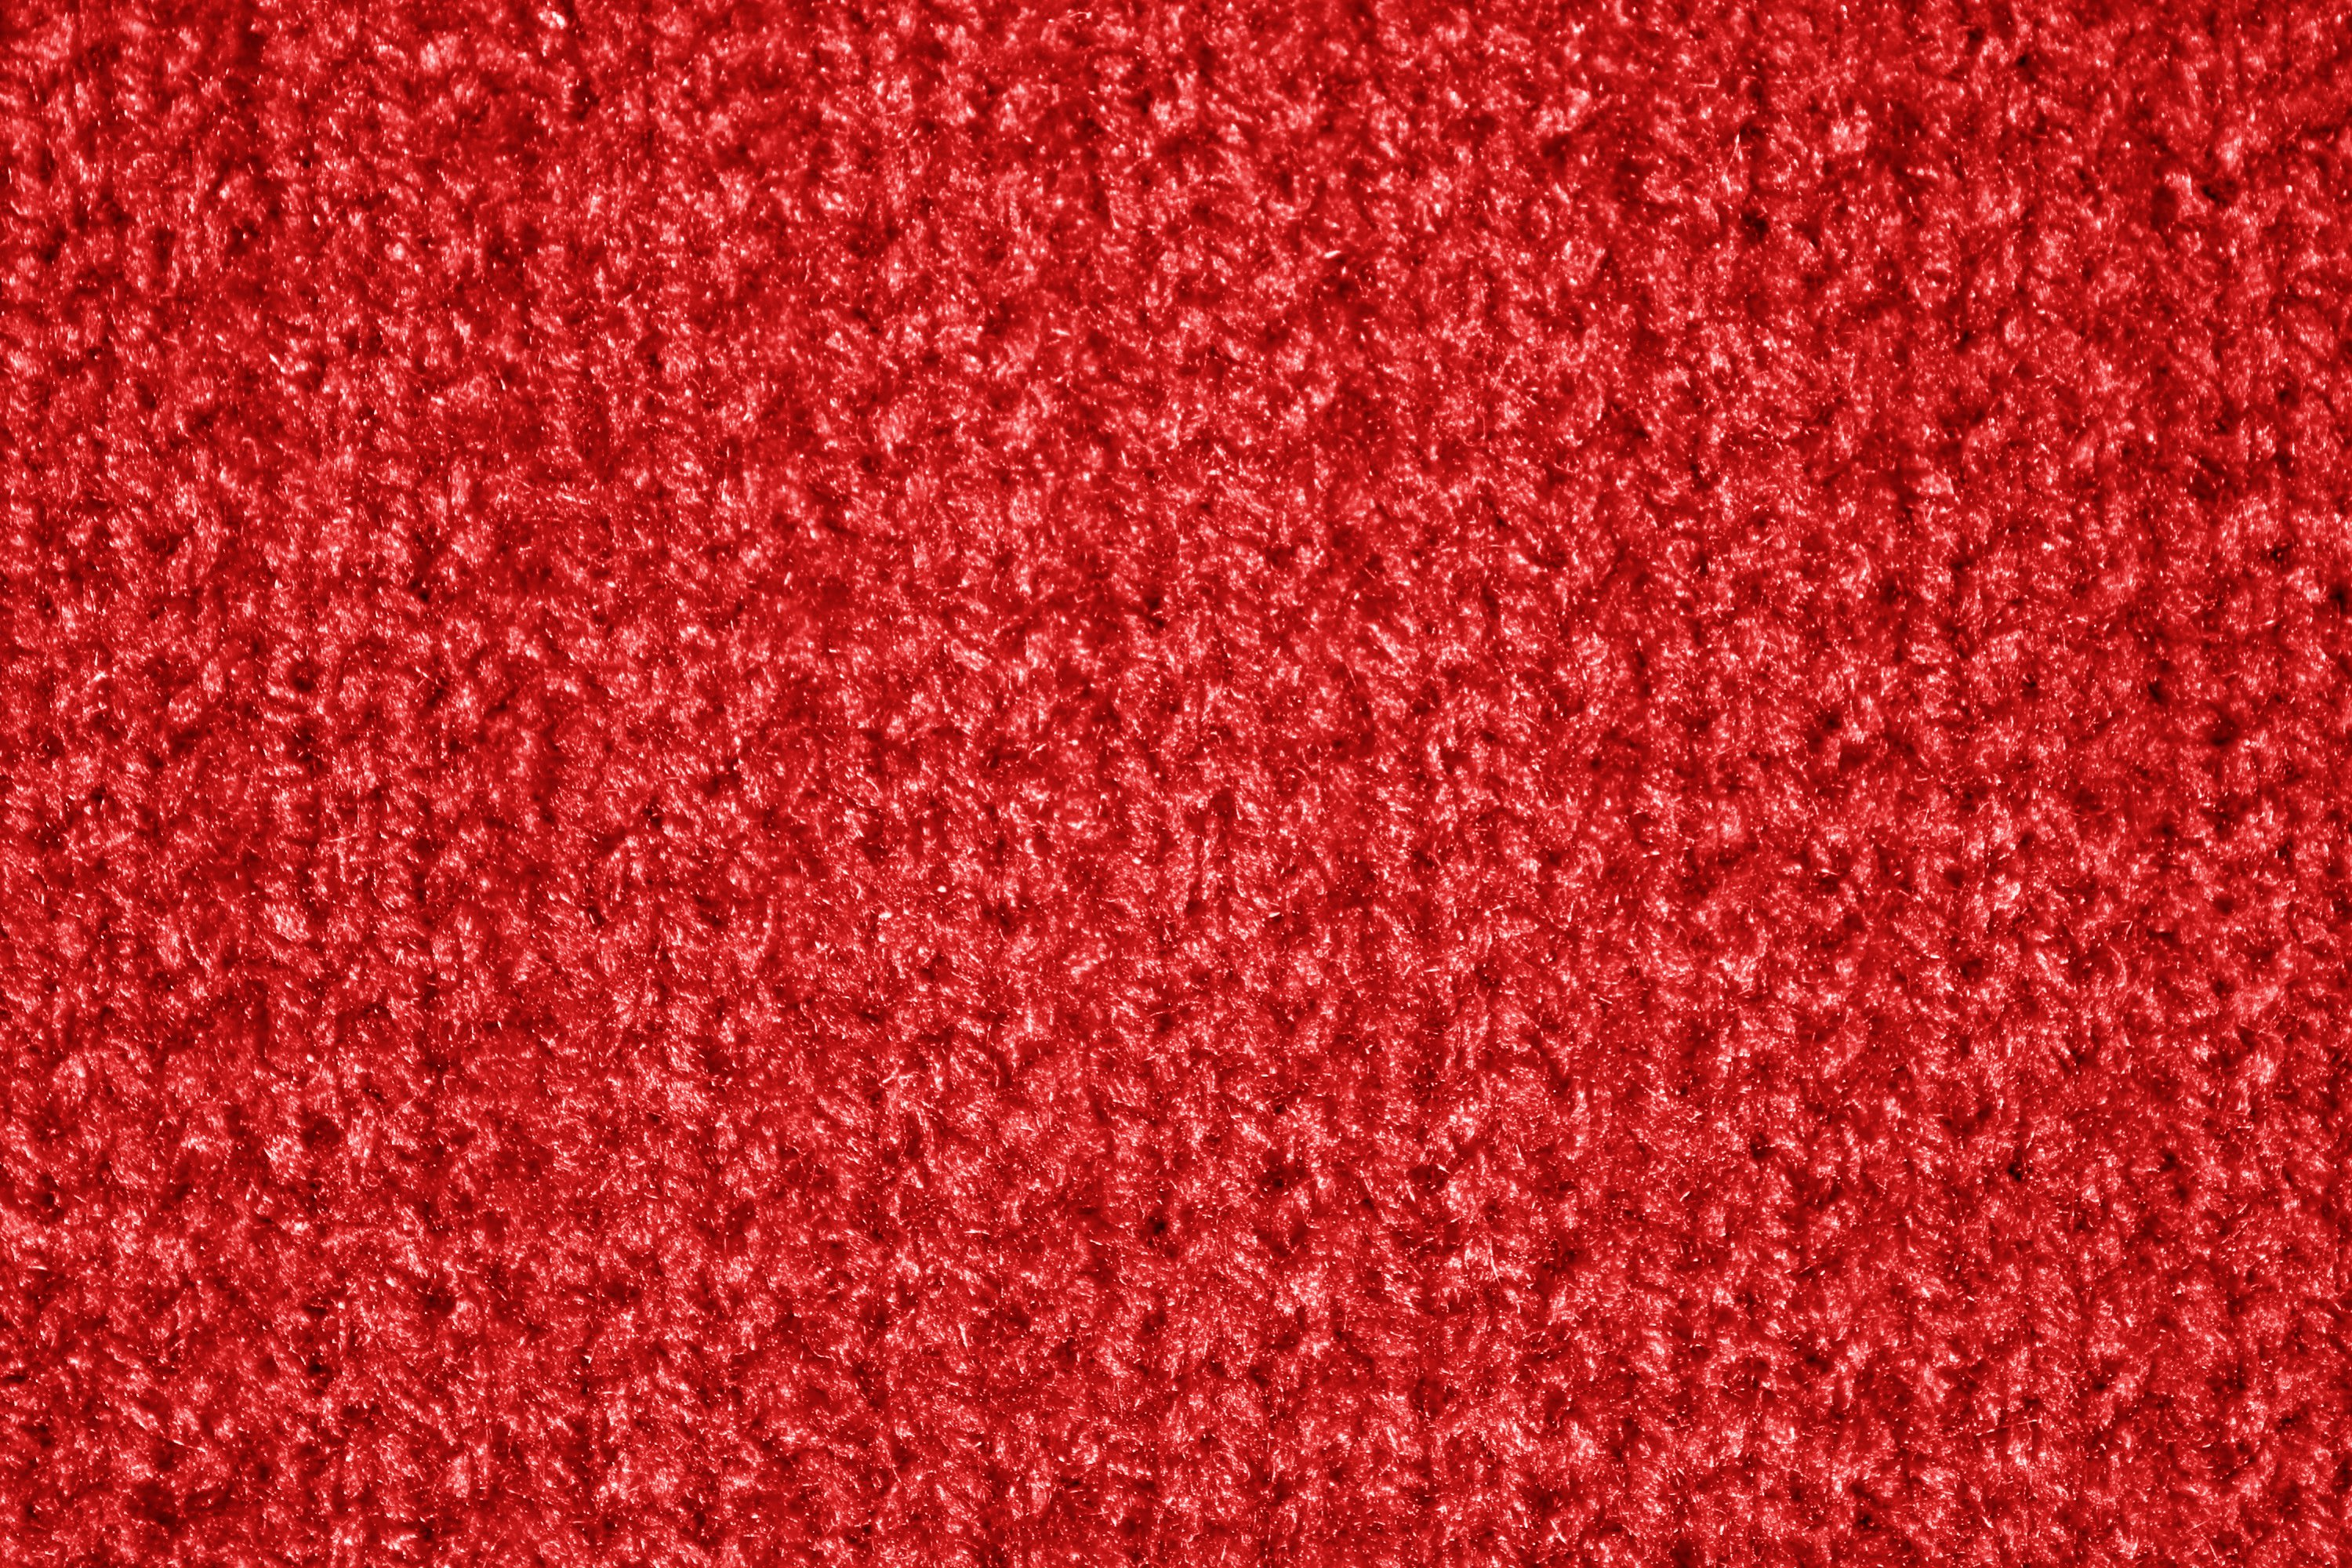 Knitting Texture Mat : Red knit texture picture free photograph photos public